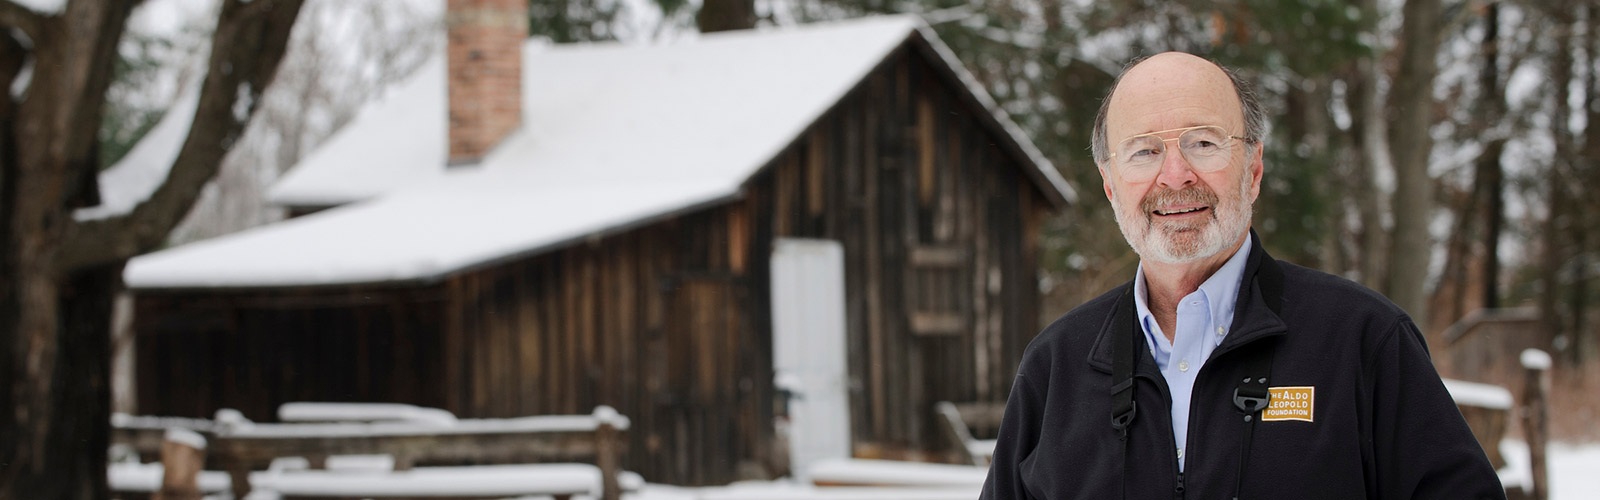 Stan Temple pictured in the snowy woods near the historic Aldo Leopold Shack in rural Baraboo, Wisconsin.